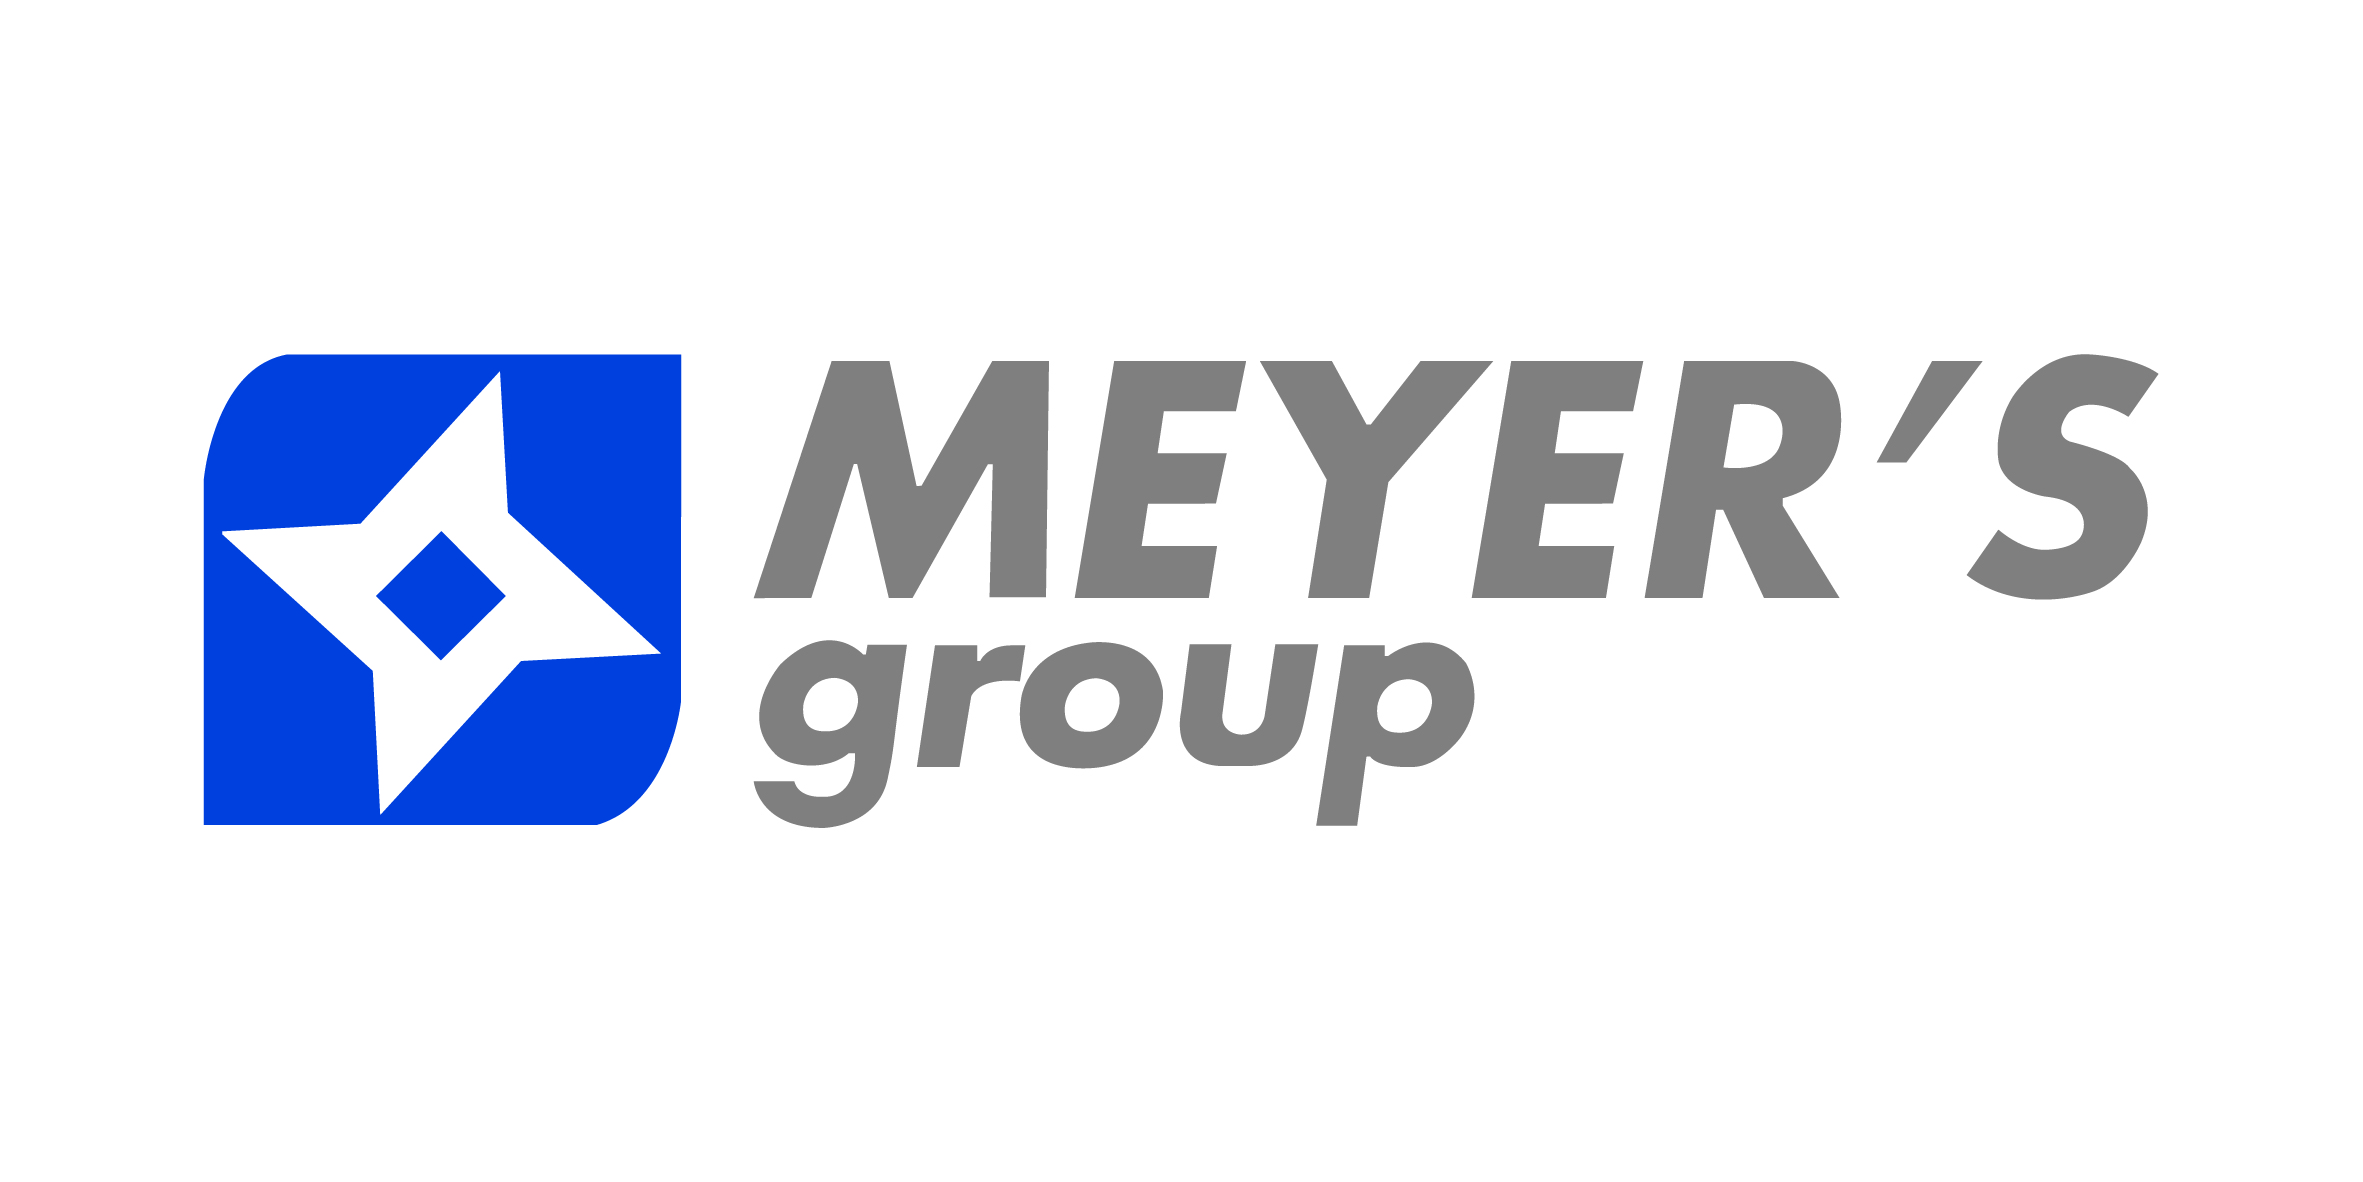 Meyer's group logo